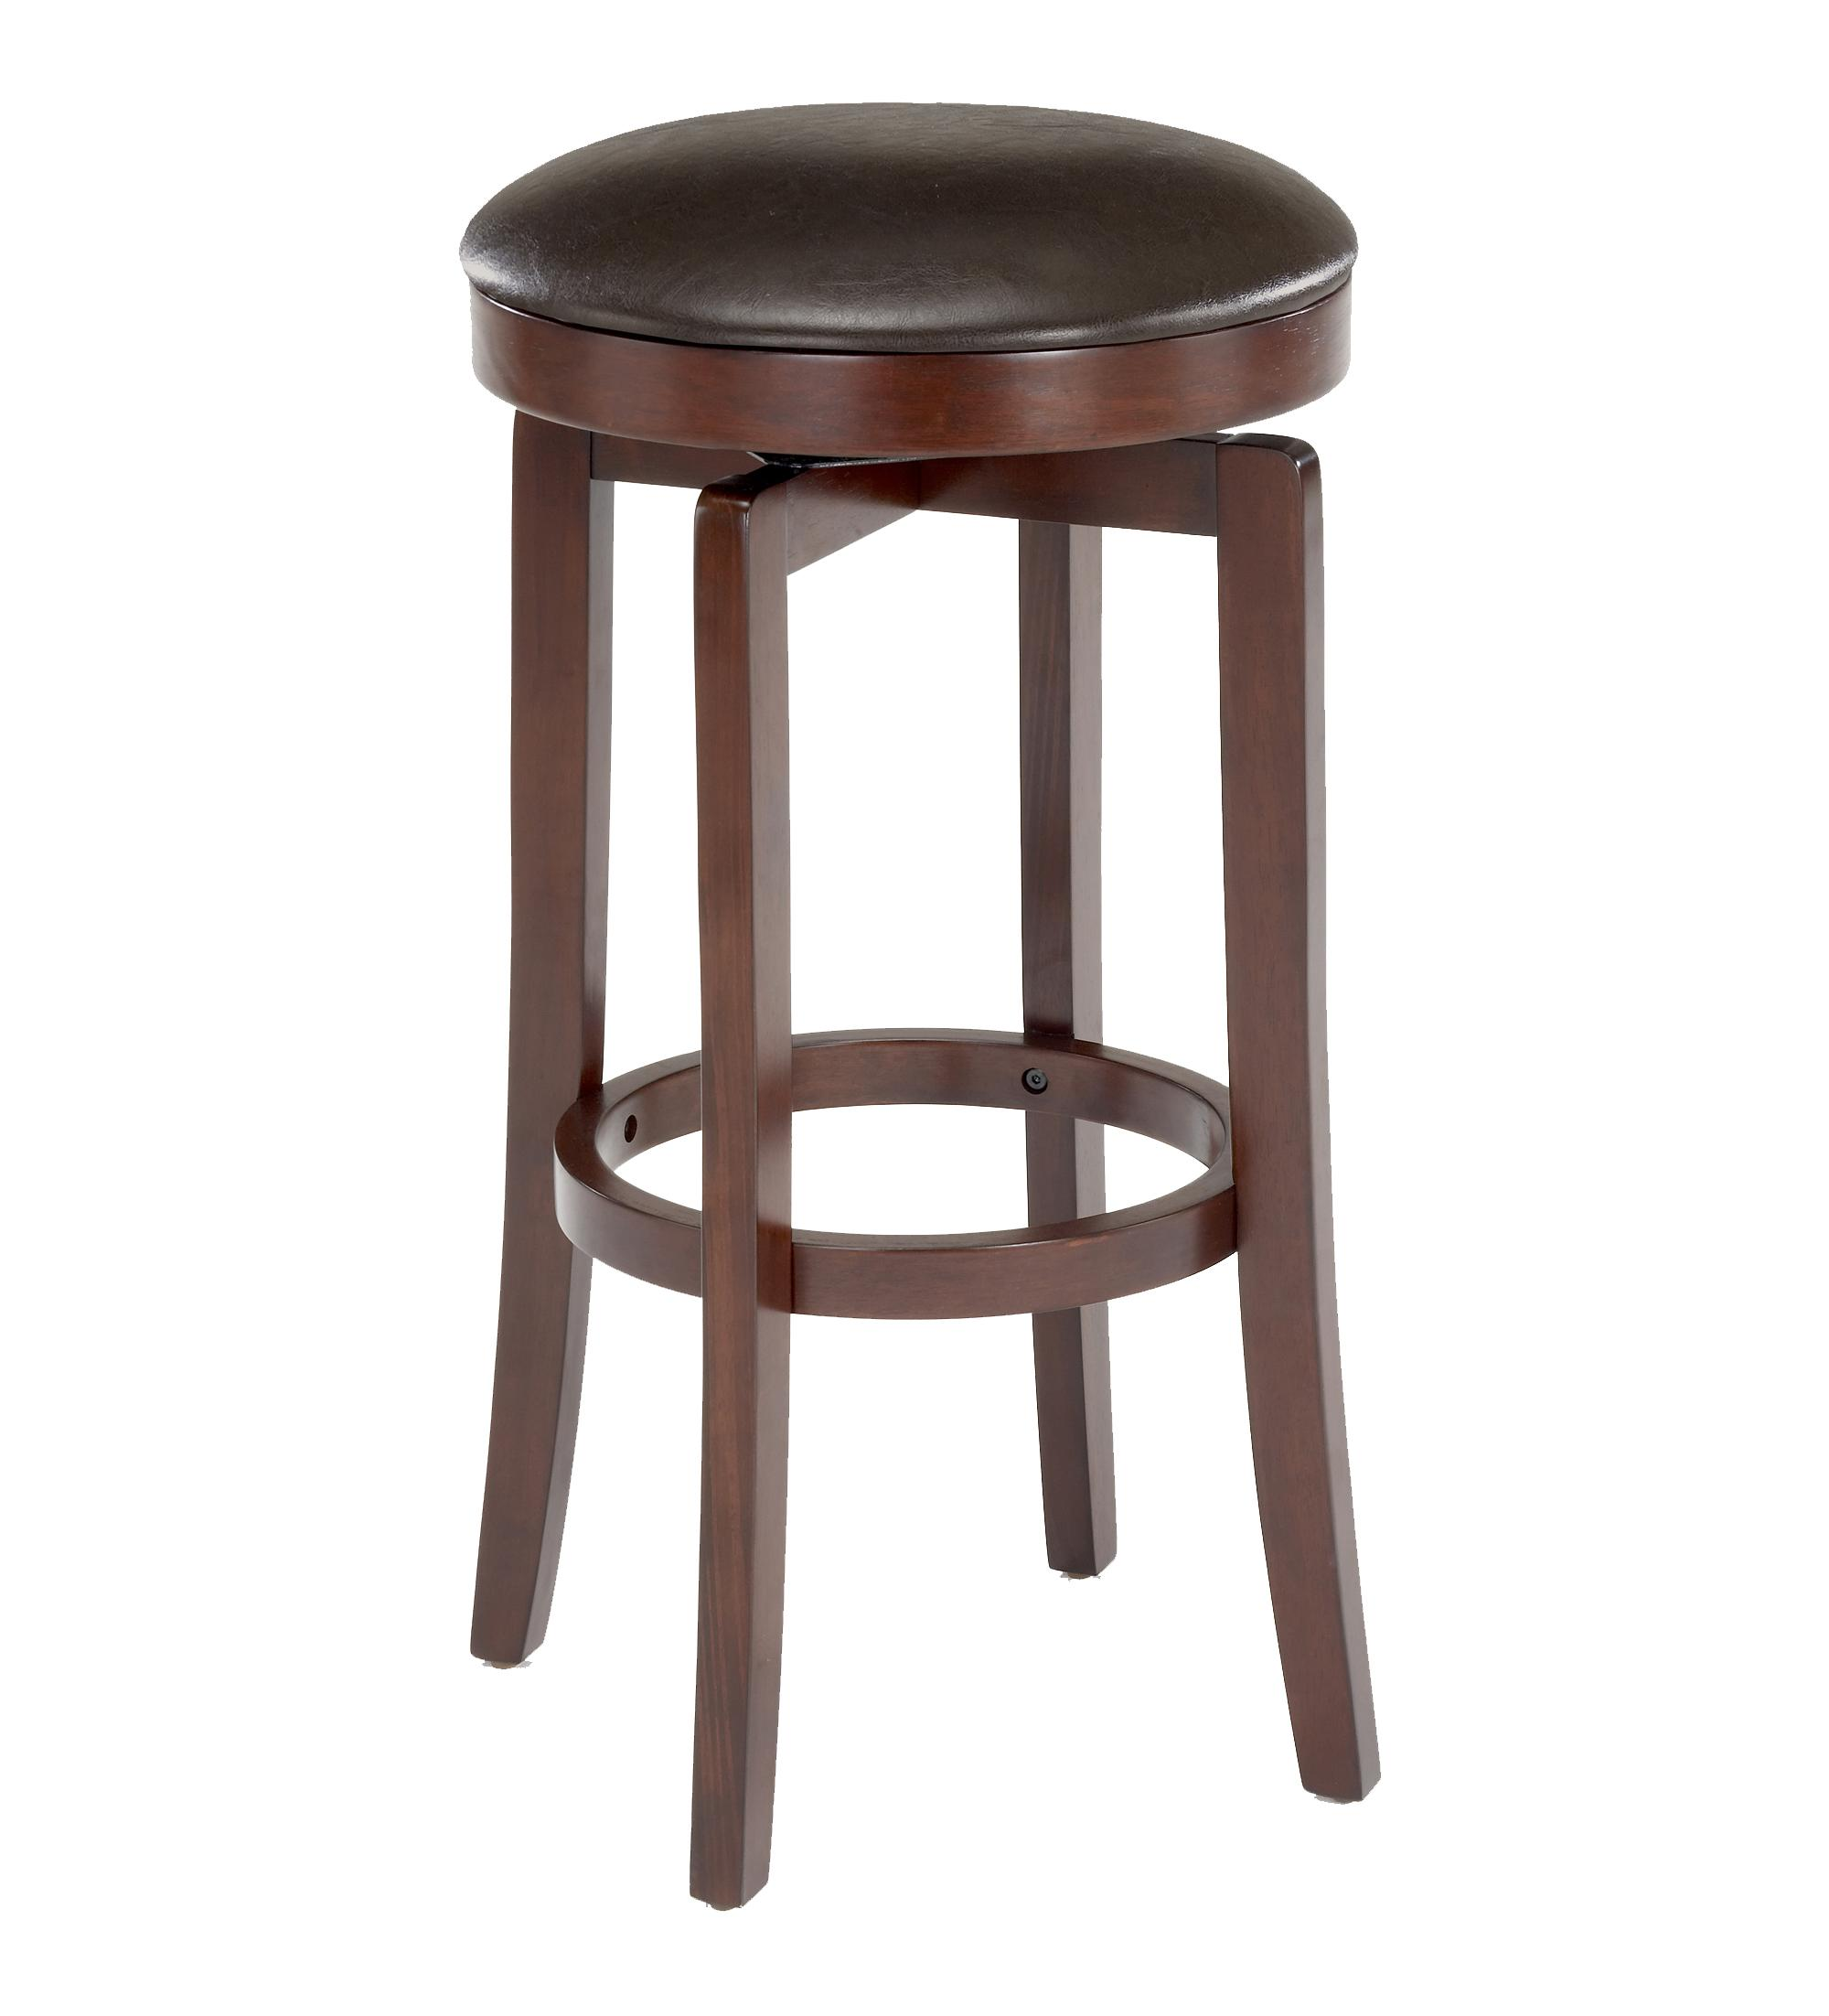 "Hillsdale Backless Bar Stools 31"" Malone Backless Bar Stool - Item Number: 63455-830"